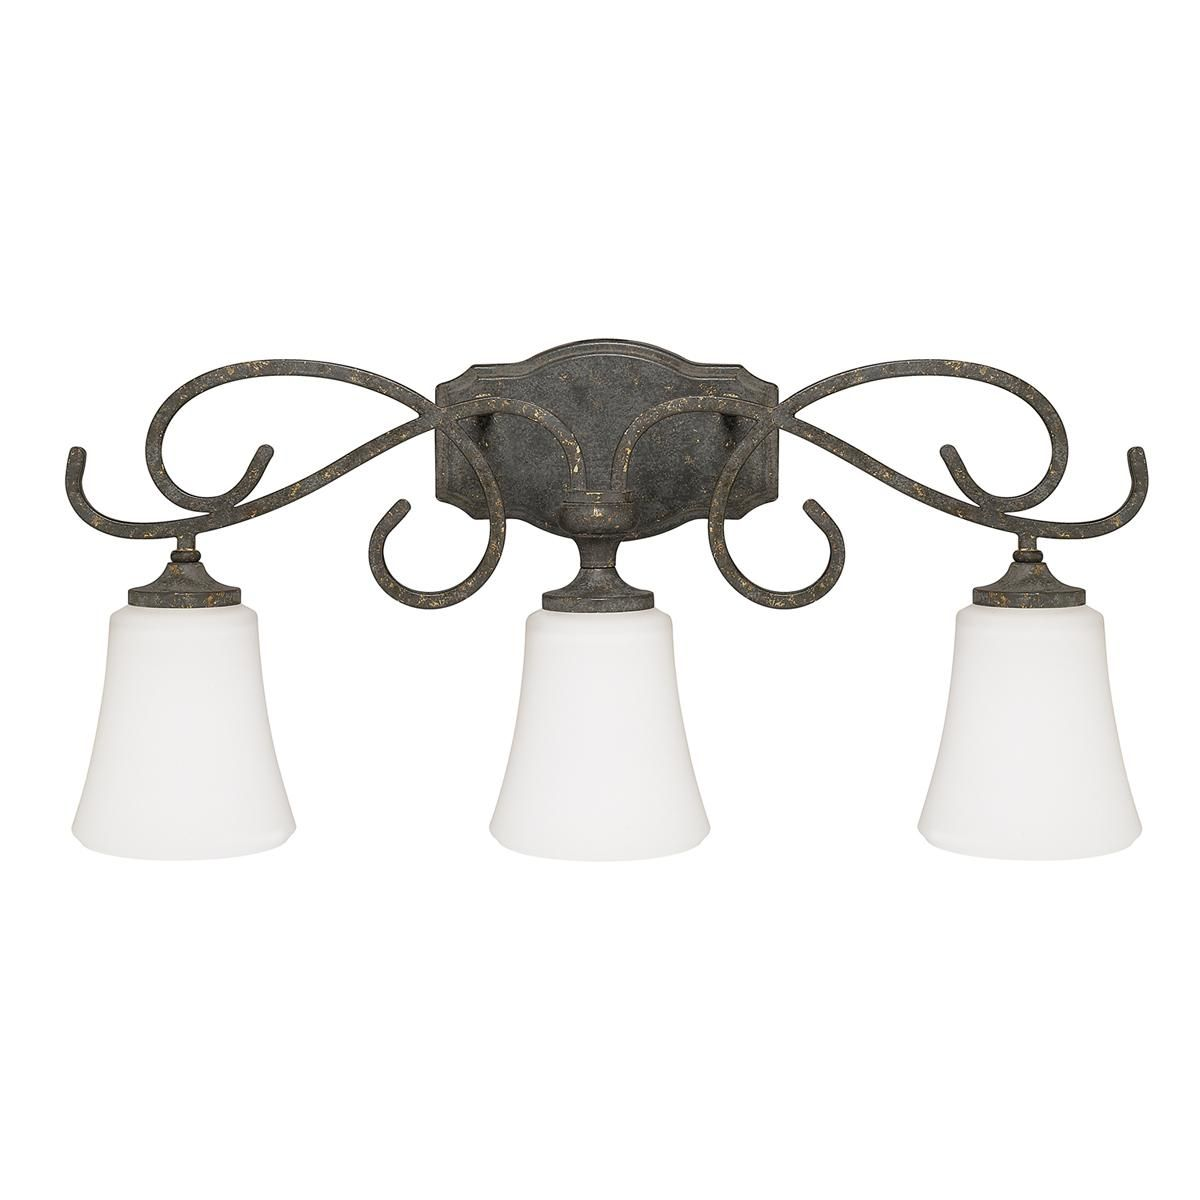 Weathered French Country Bath Light 3 Light Capital Lighting Bath Vanity Lighting Vanity Lighting